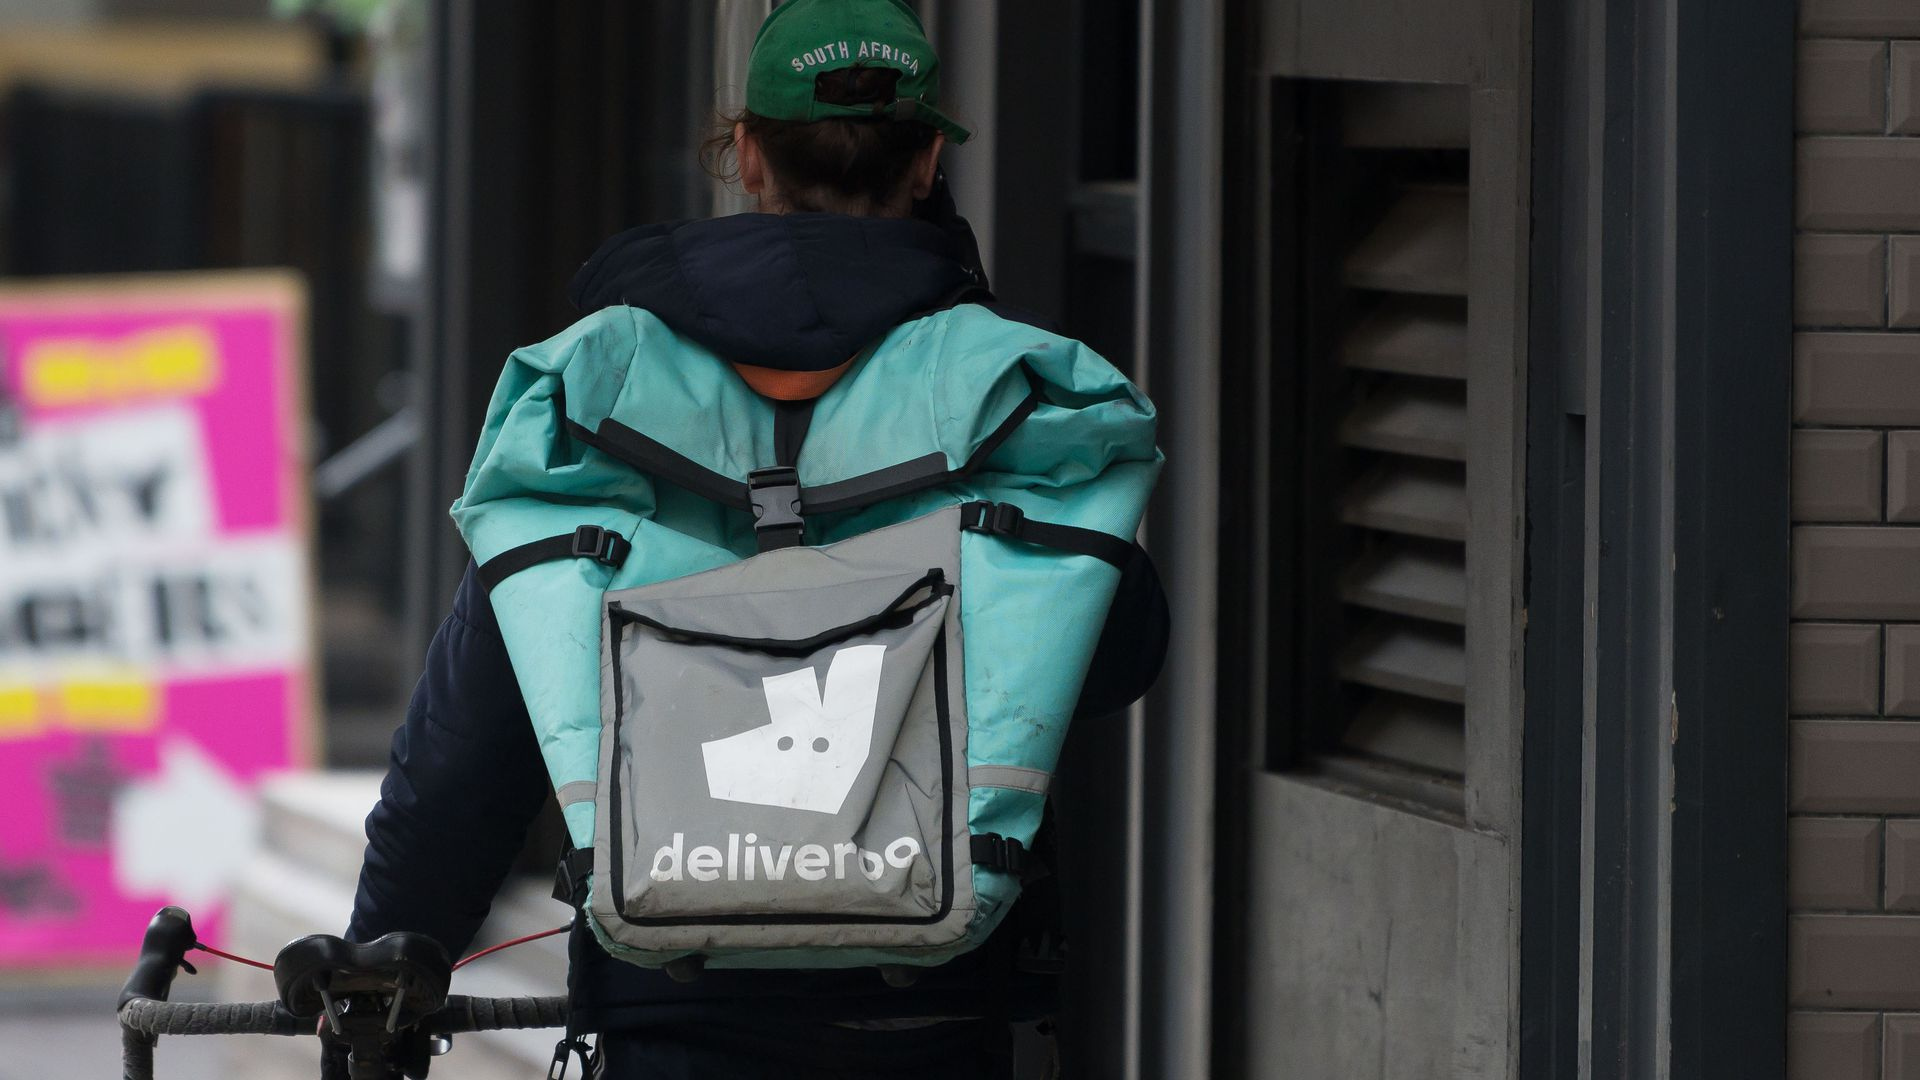 London-based food delivery startup raises $575 million